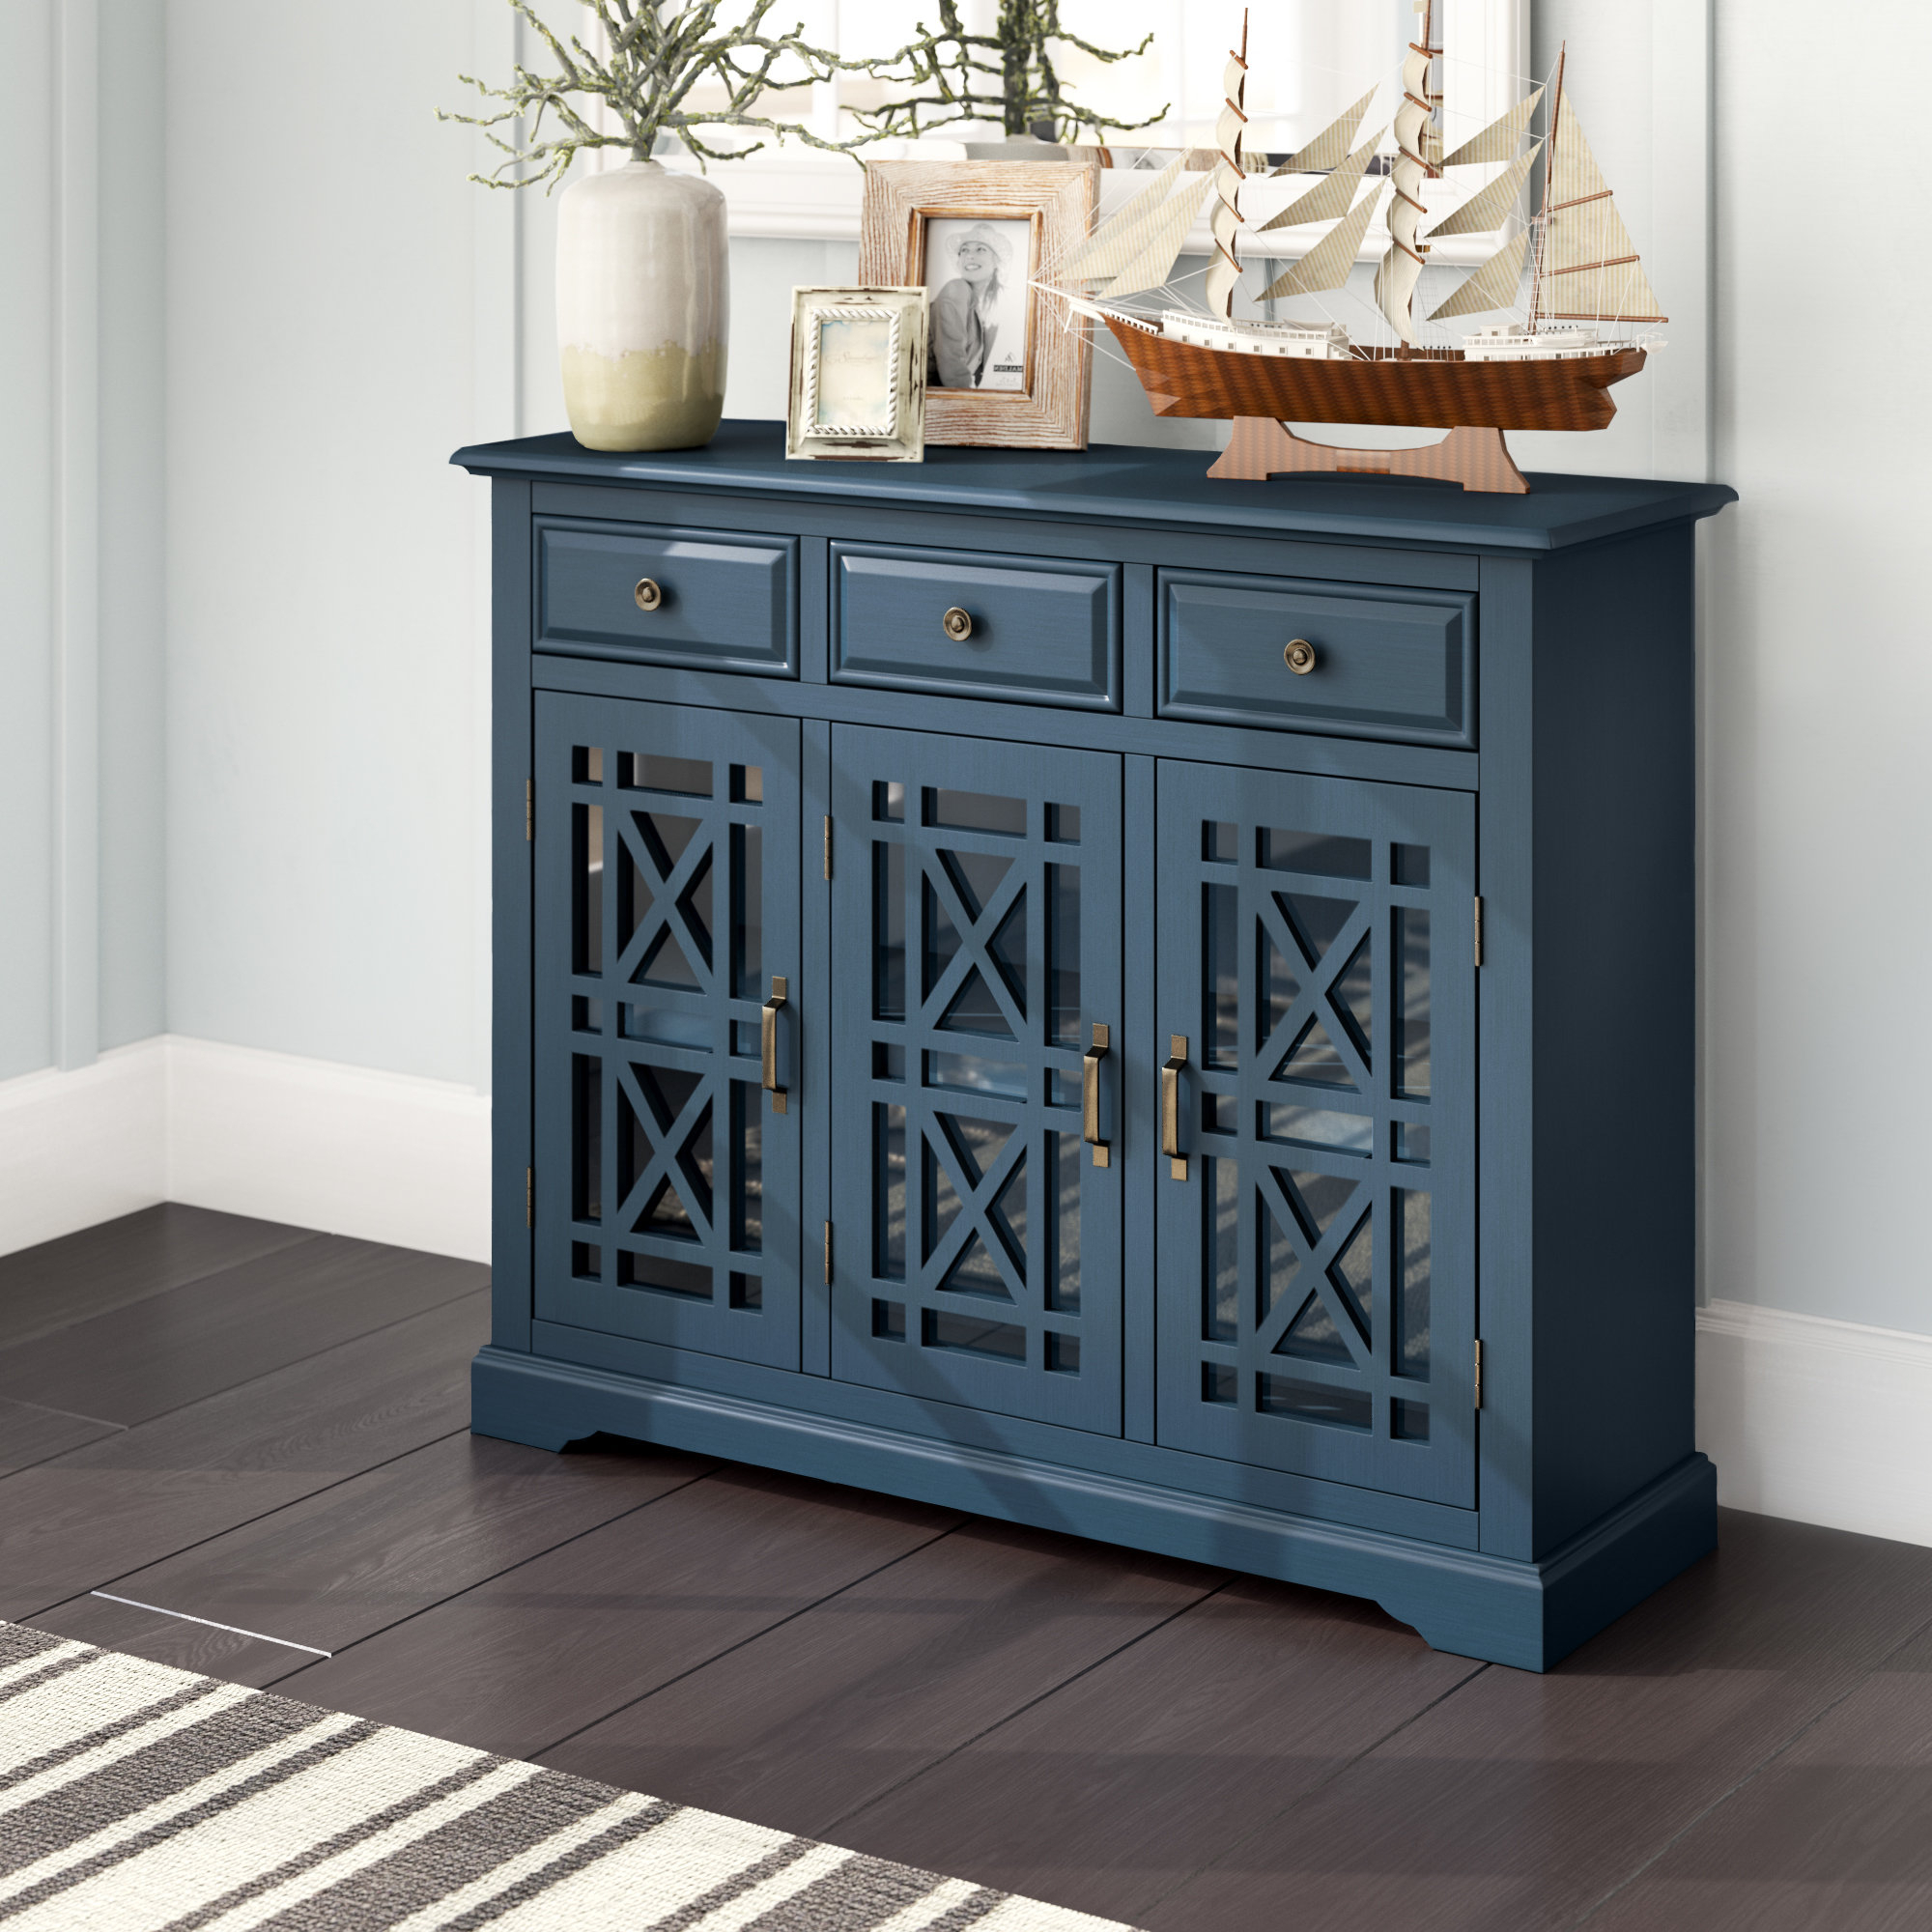 Sideboards & Buffet Tables You'll Love In 2019 | Wayfair In Most Recently Released Rutherford Sideboards (View 16 of 20)